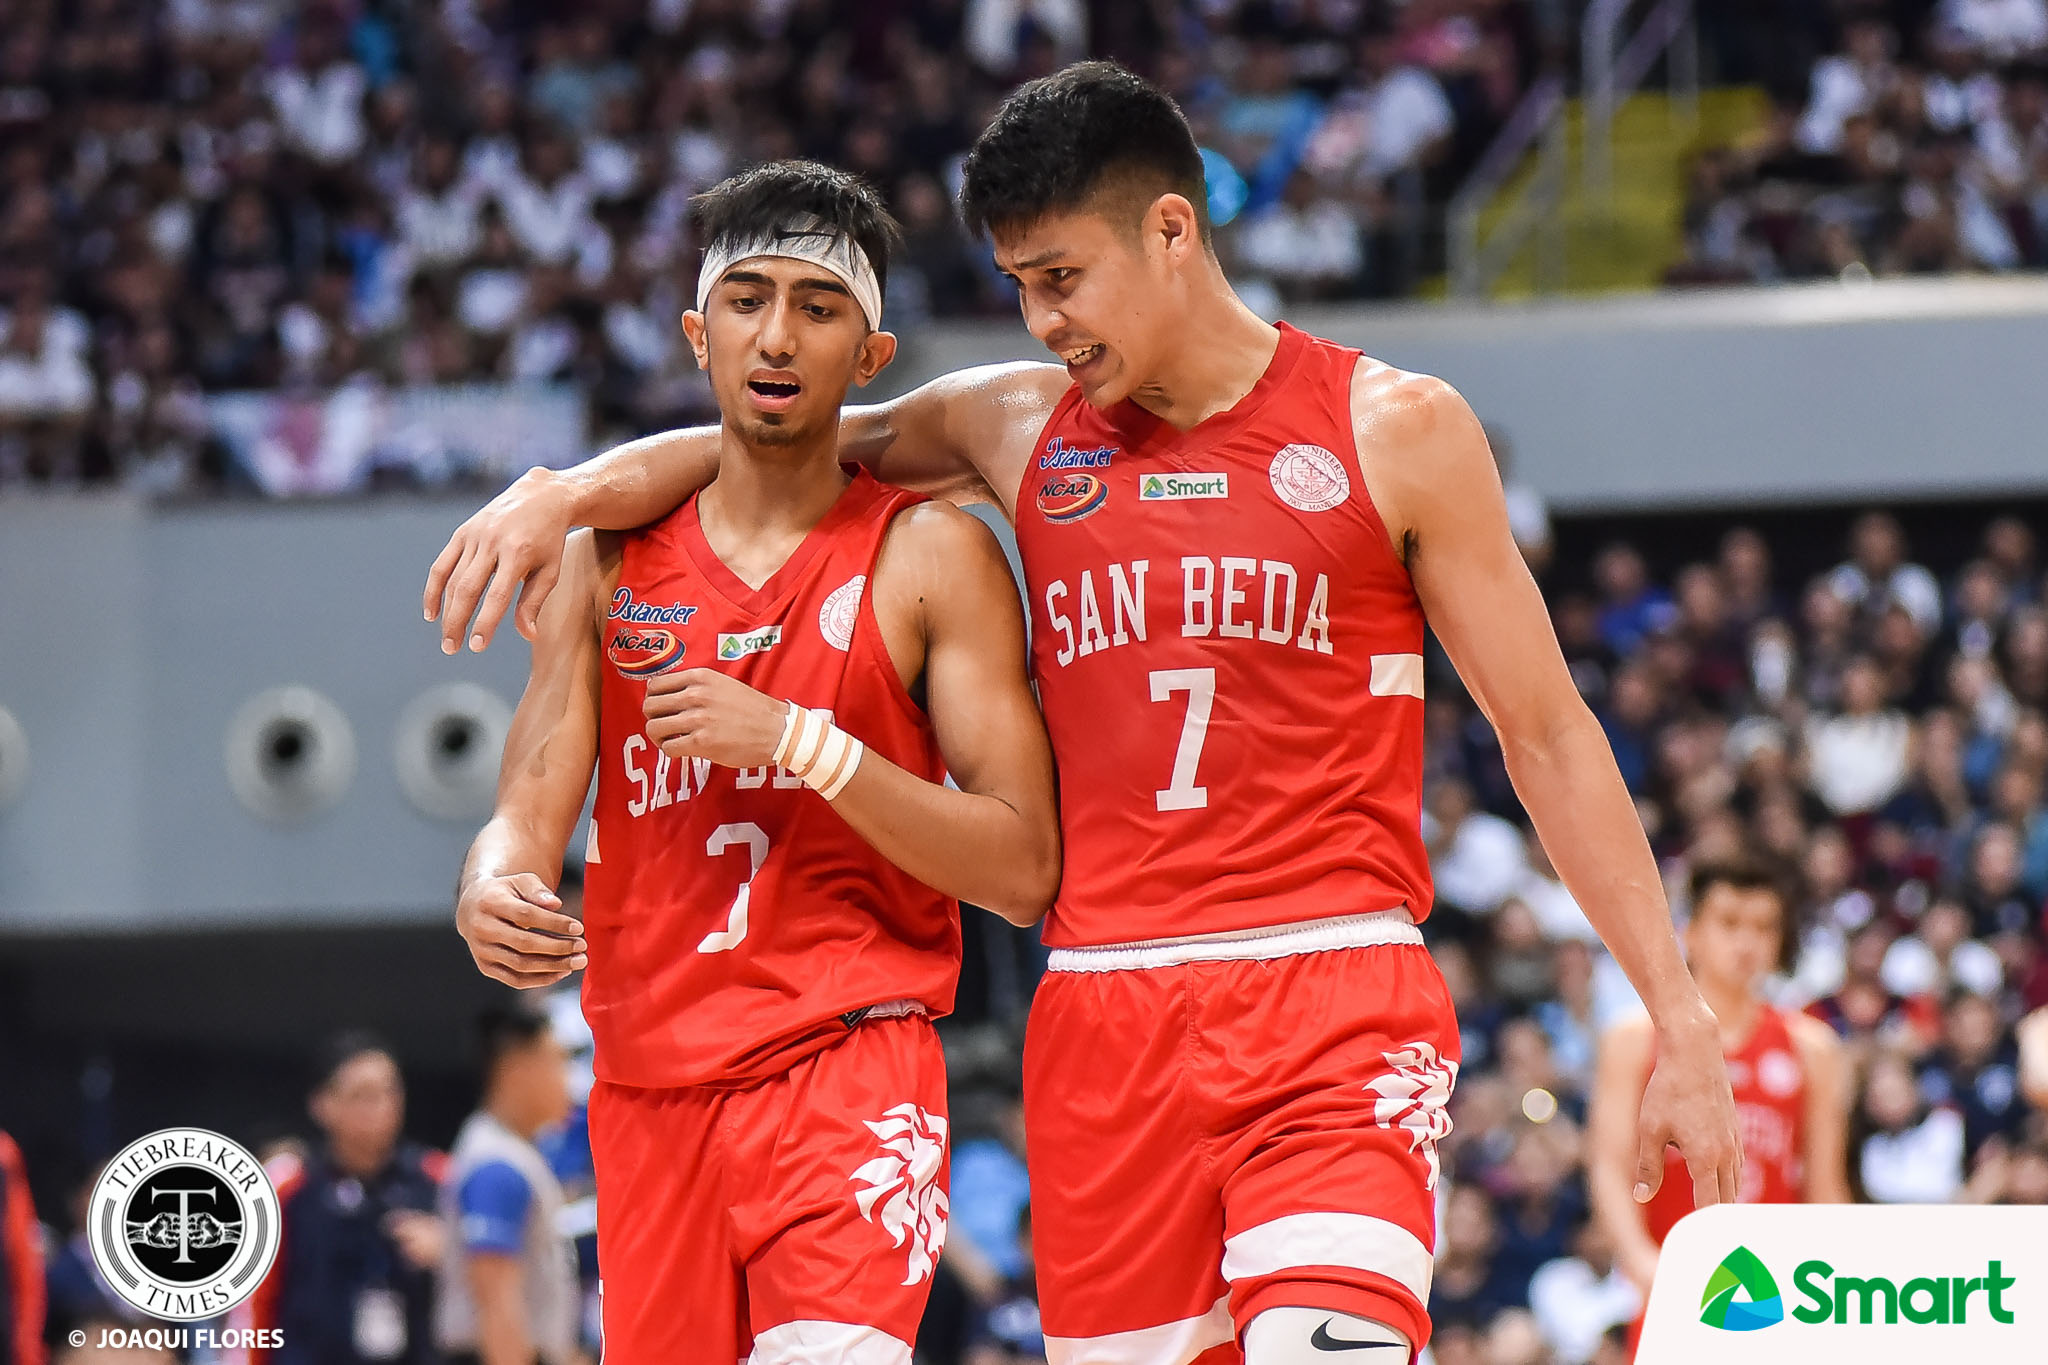 Tiebreaker Times Evan Nelle confirms La Salle transfer: 'I need to chart a new path forward' Basketball DLSU NCAA News SBC UAAP  UAAP Season 84 Men's bASKETBALL UAAP Season 84 San Beda Seniors Basketball NCAA Season 96 Seniors Basketball NCAA Season 96 James Canlas Evan Nelle DLSU Men's Basketball